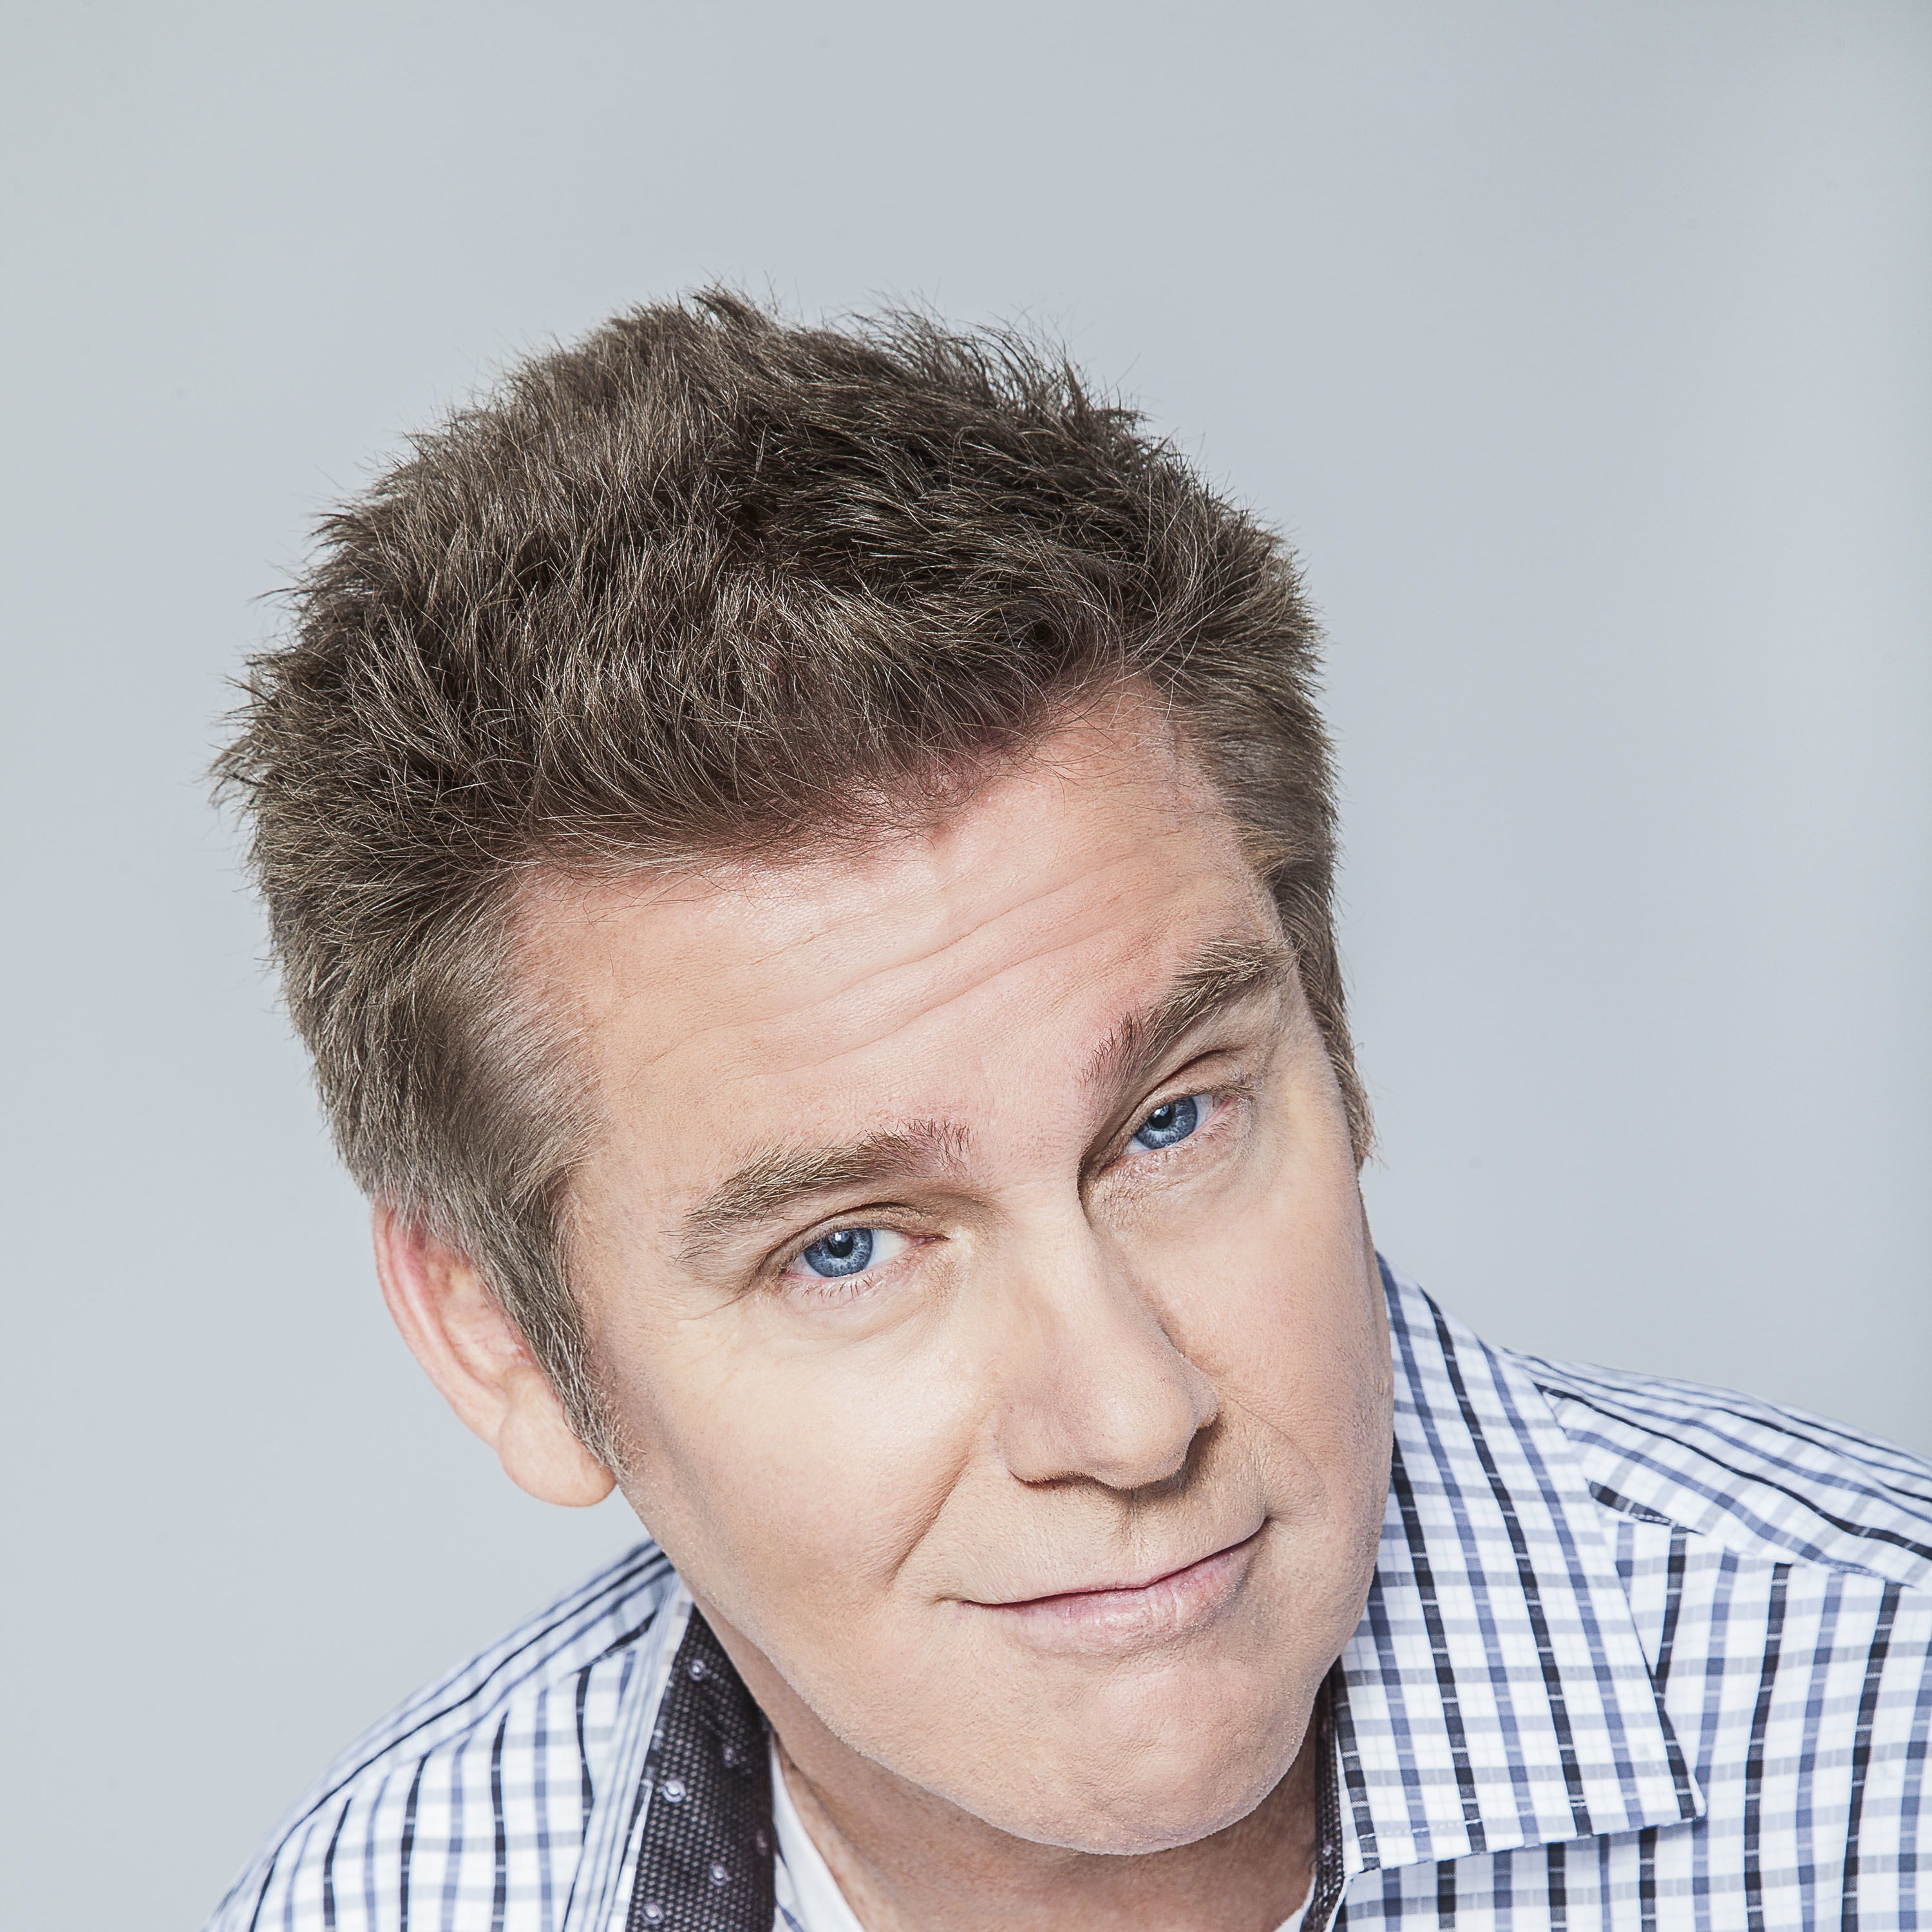 Brian regan   color 1   photo credit jerry metellus uelwtj